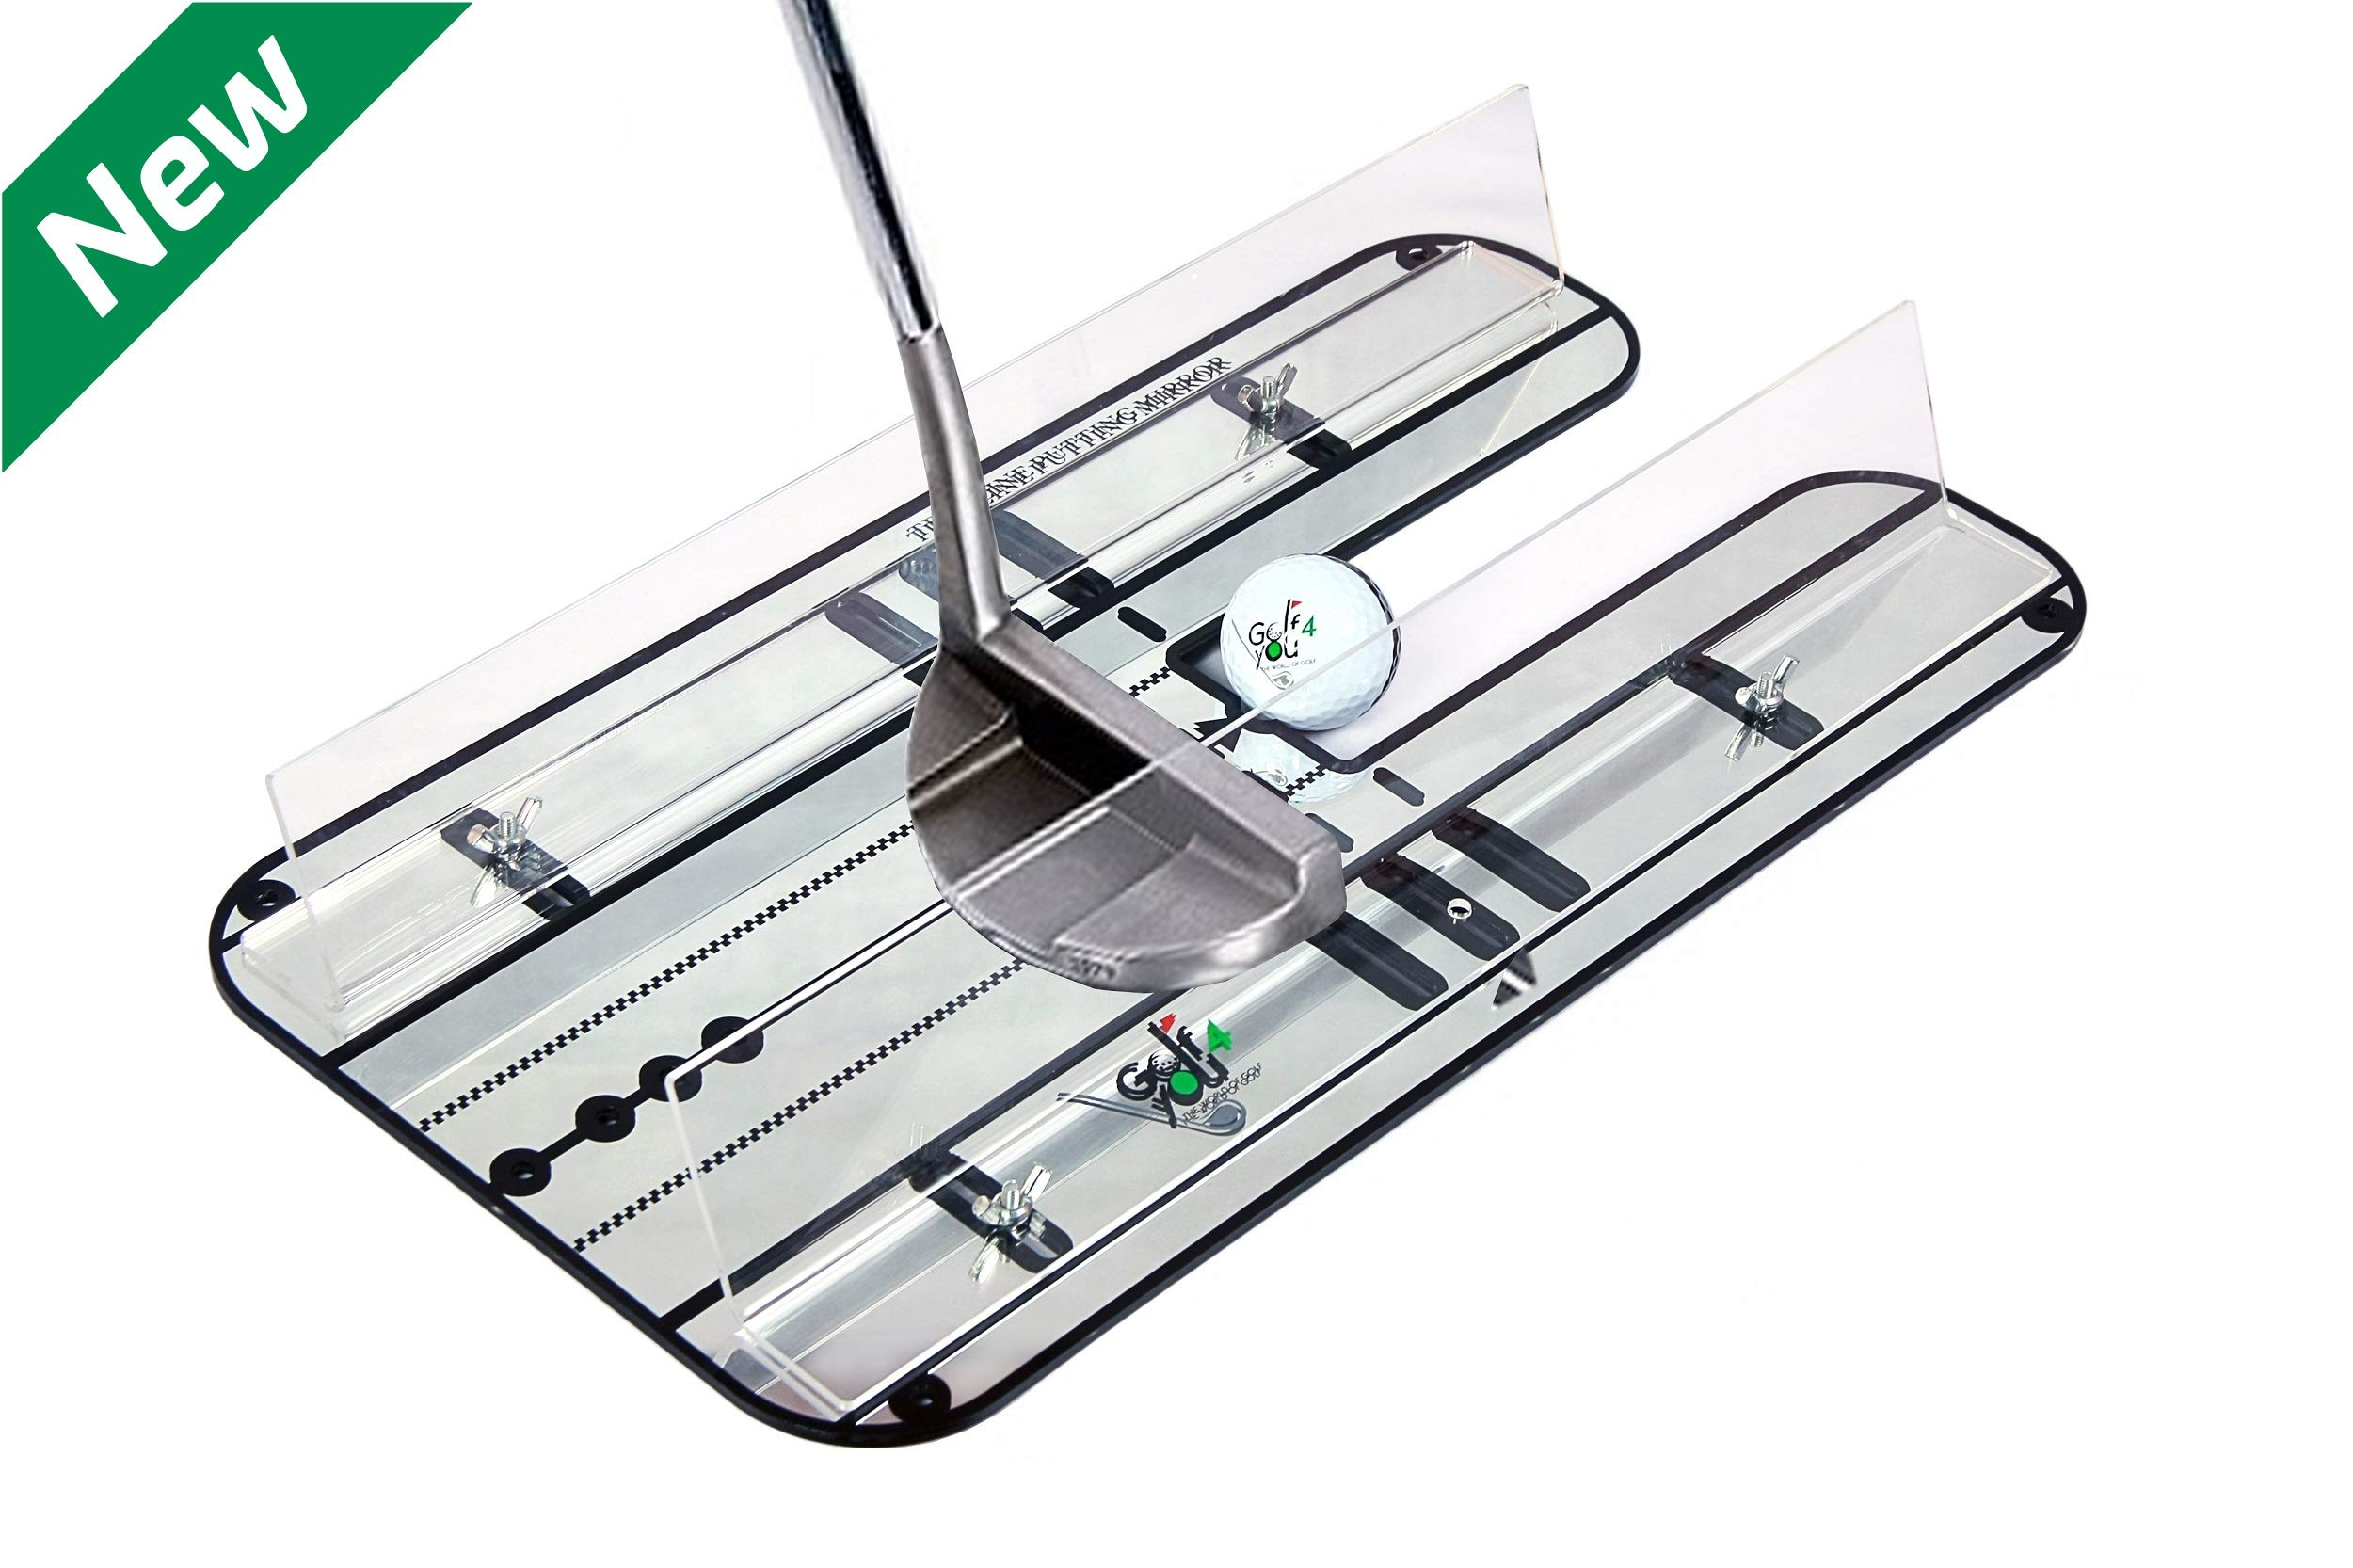 Golf Training Aid - Premium Putting Set - XL Alignment Putting Mirror Design with Our Exclusive Clear Adjustable Guide Rails - Leading Practice Aid for On-Line, Consistent Putting Stroke 17.5'' x 9.3''